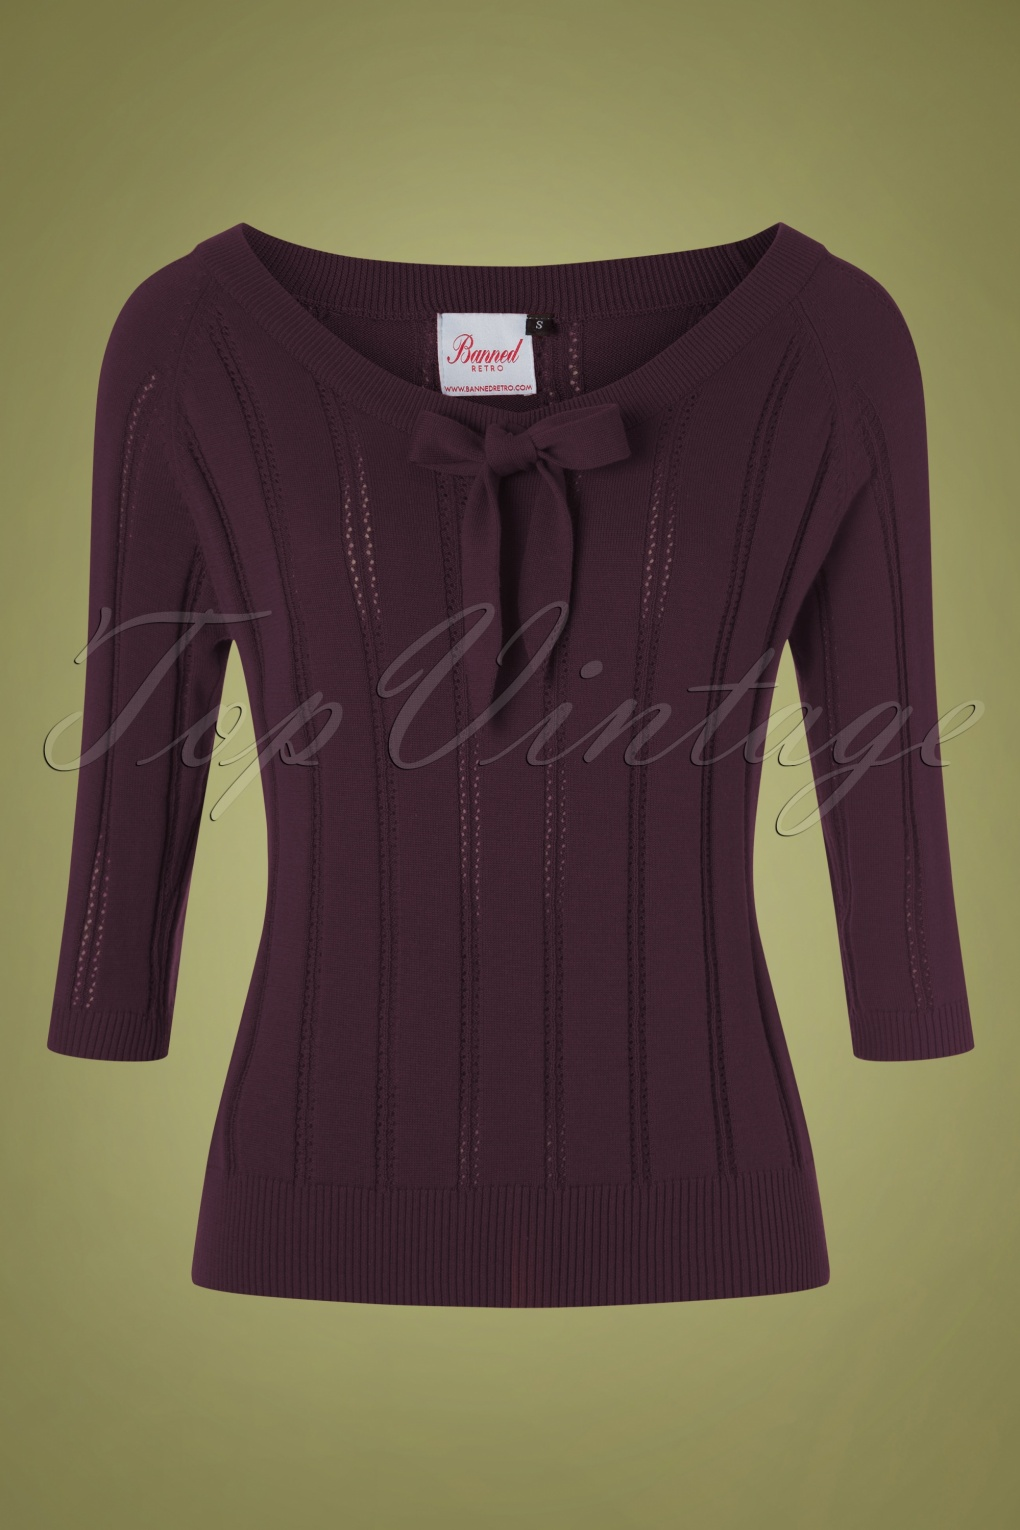 Vintage Sweaters, Retro Sweaters & Cardigan 50s Belle Bow Pointelle Top in Aubergine £28.75 AT vintagedancer.com